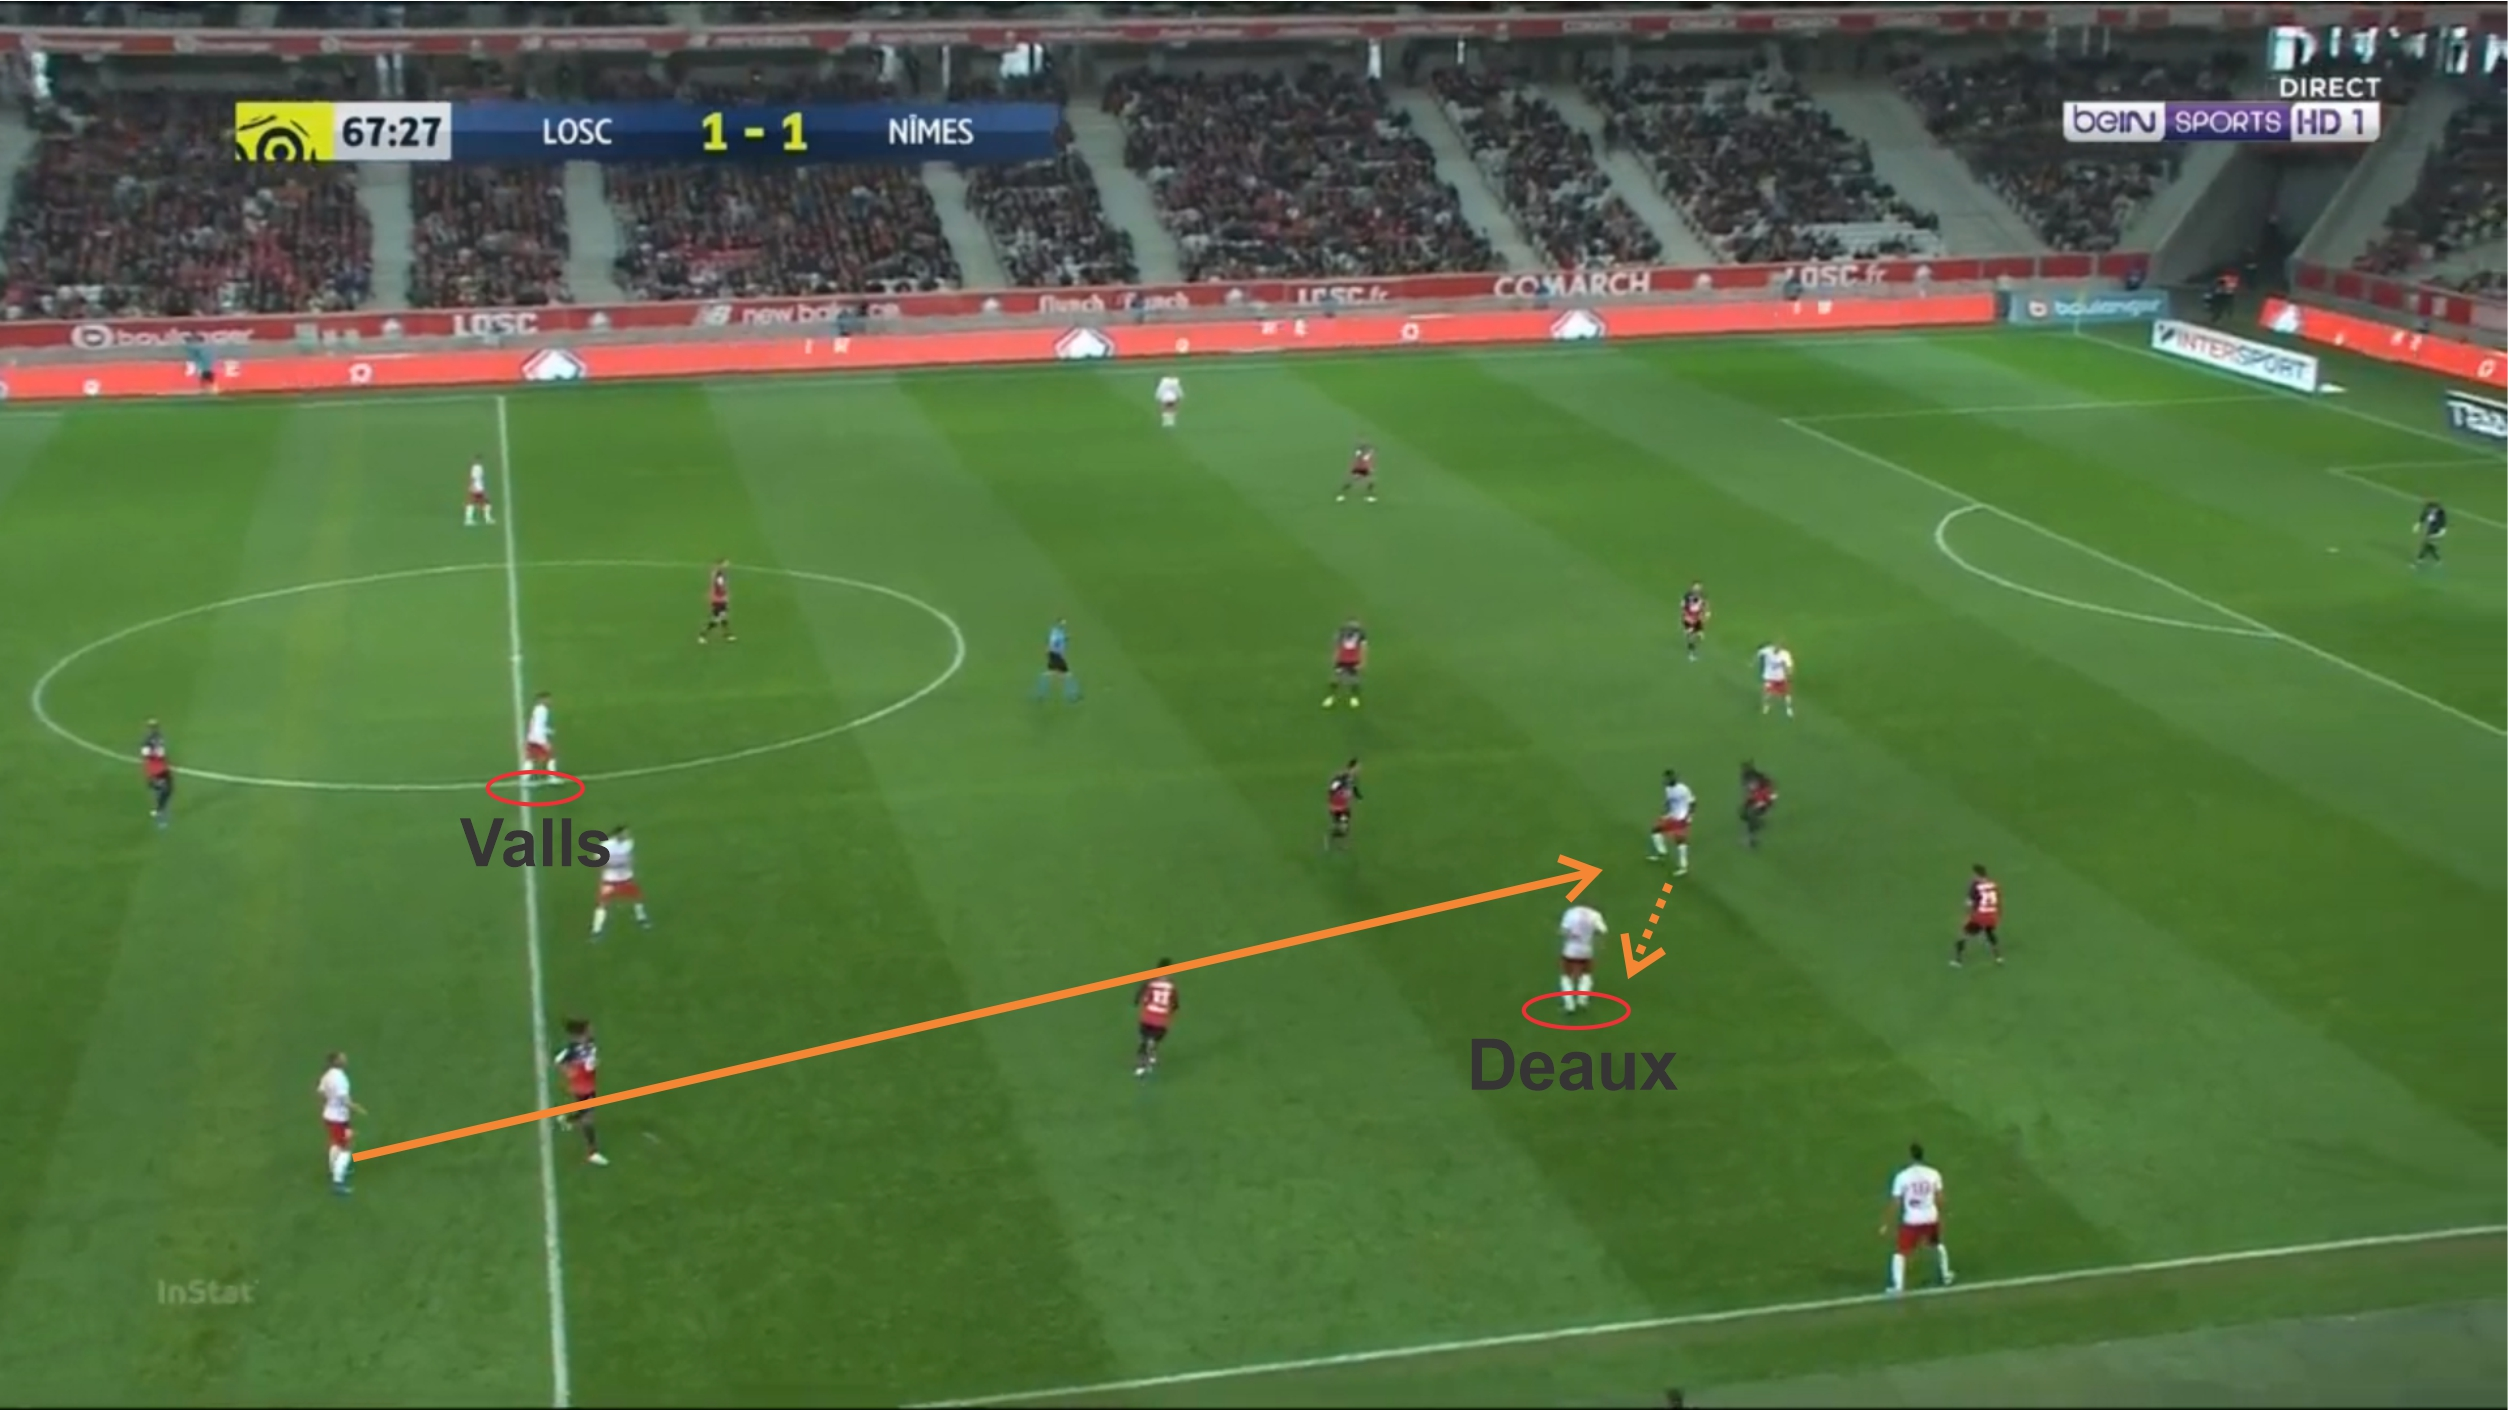 Nimes 2019/20: Why Nimes are having a disastrous campaign - scout report - tactical analysis tactics